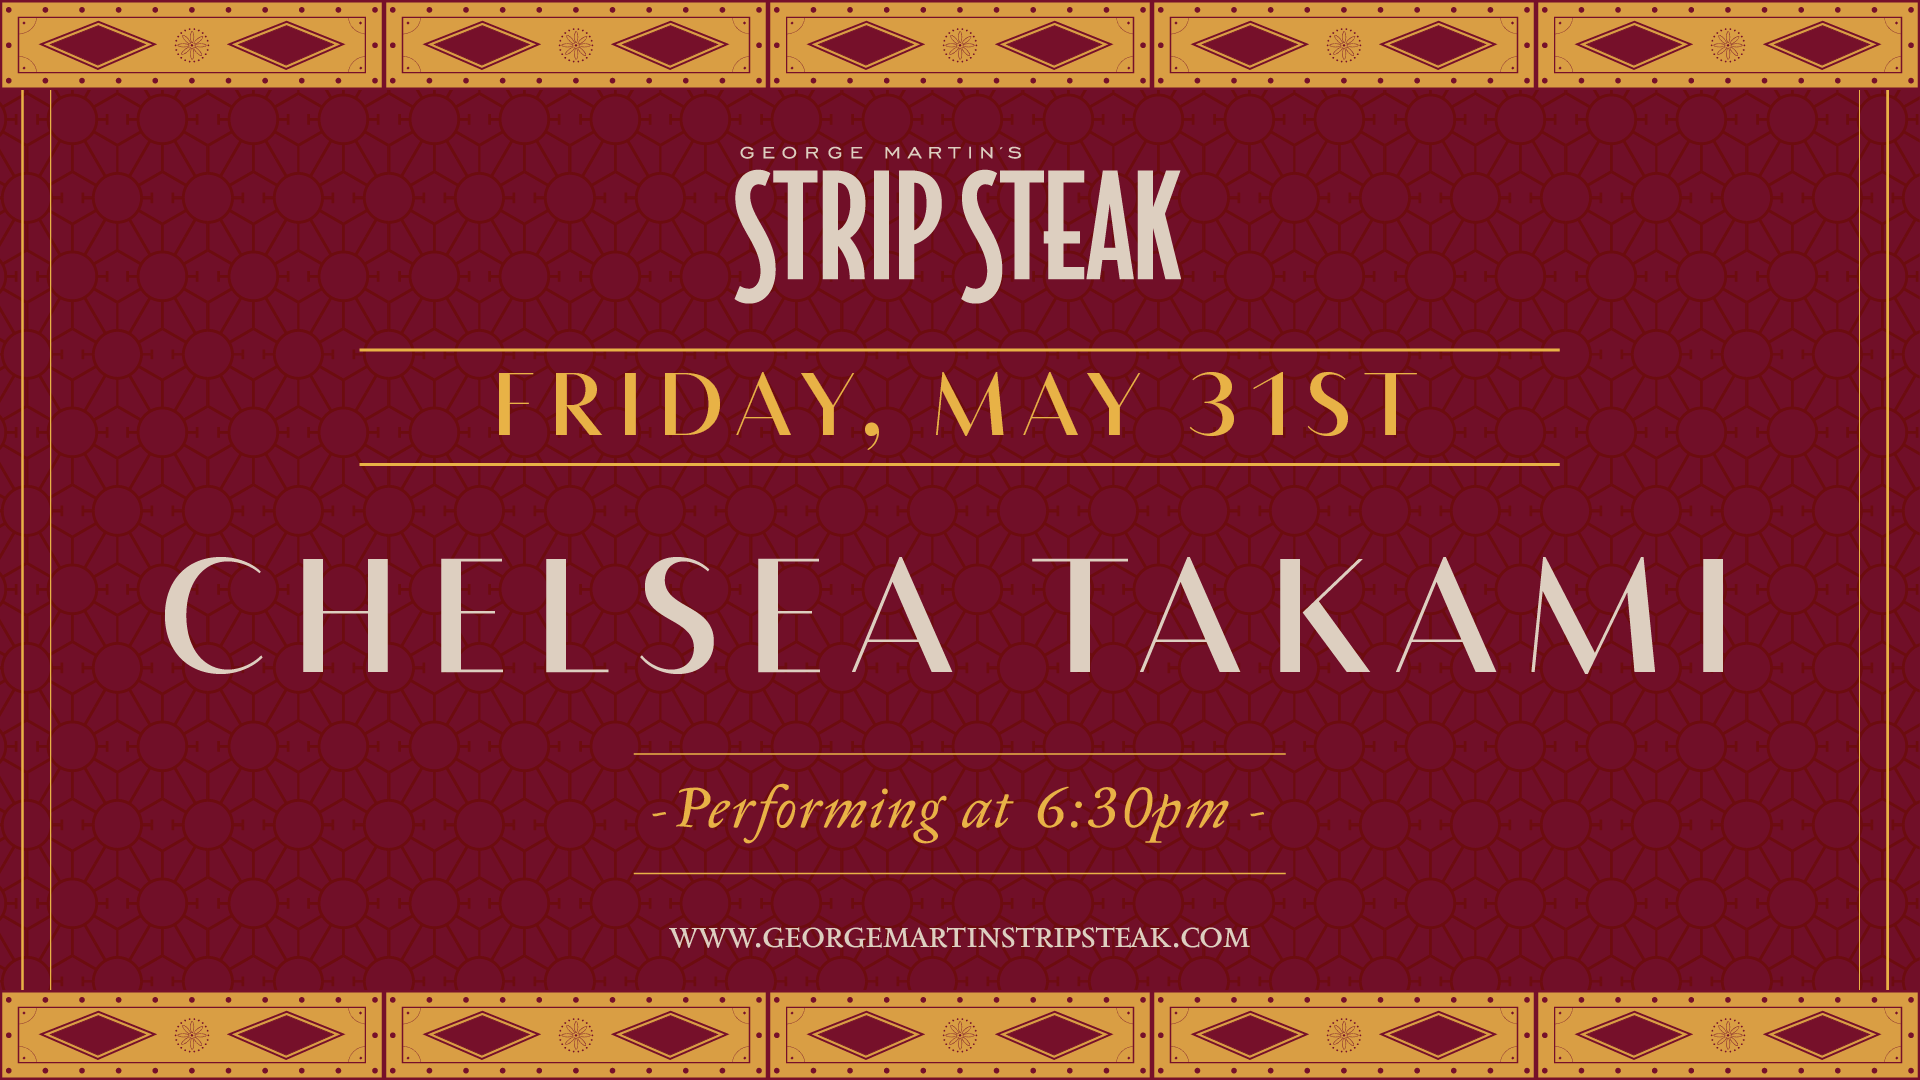 Flyer for live music with Chelsea Takami at 6:30pm.